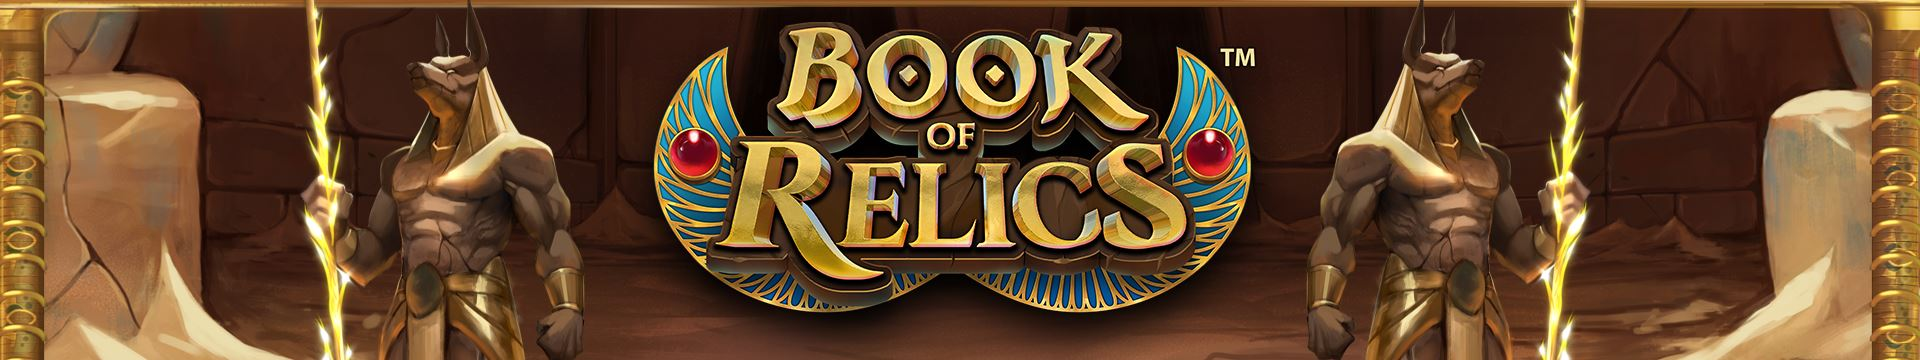 Book_of_Relics